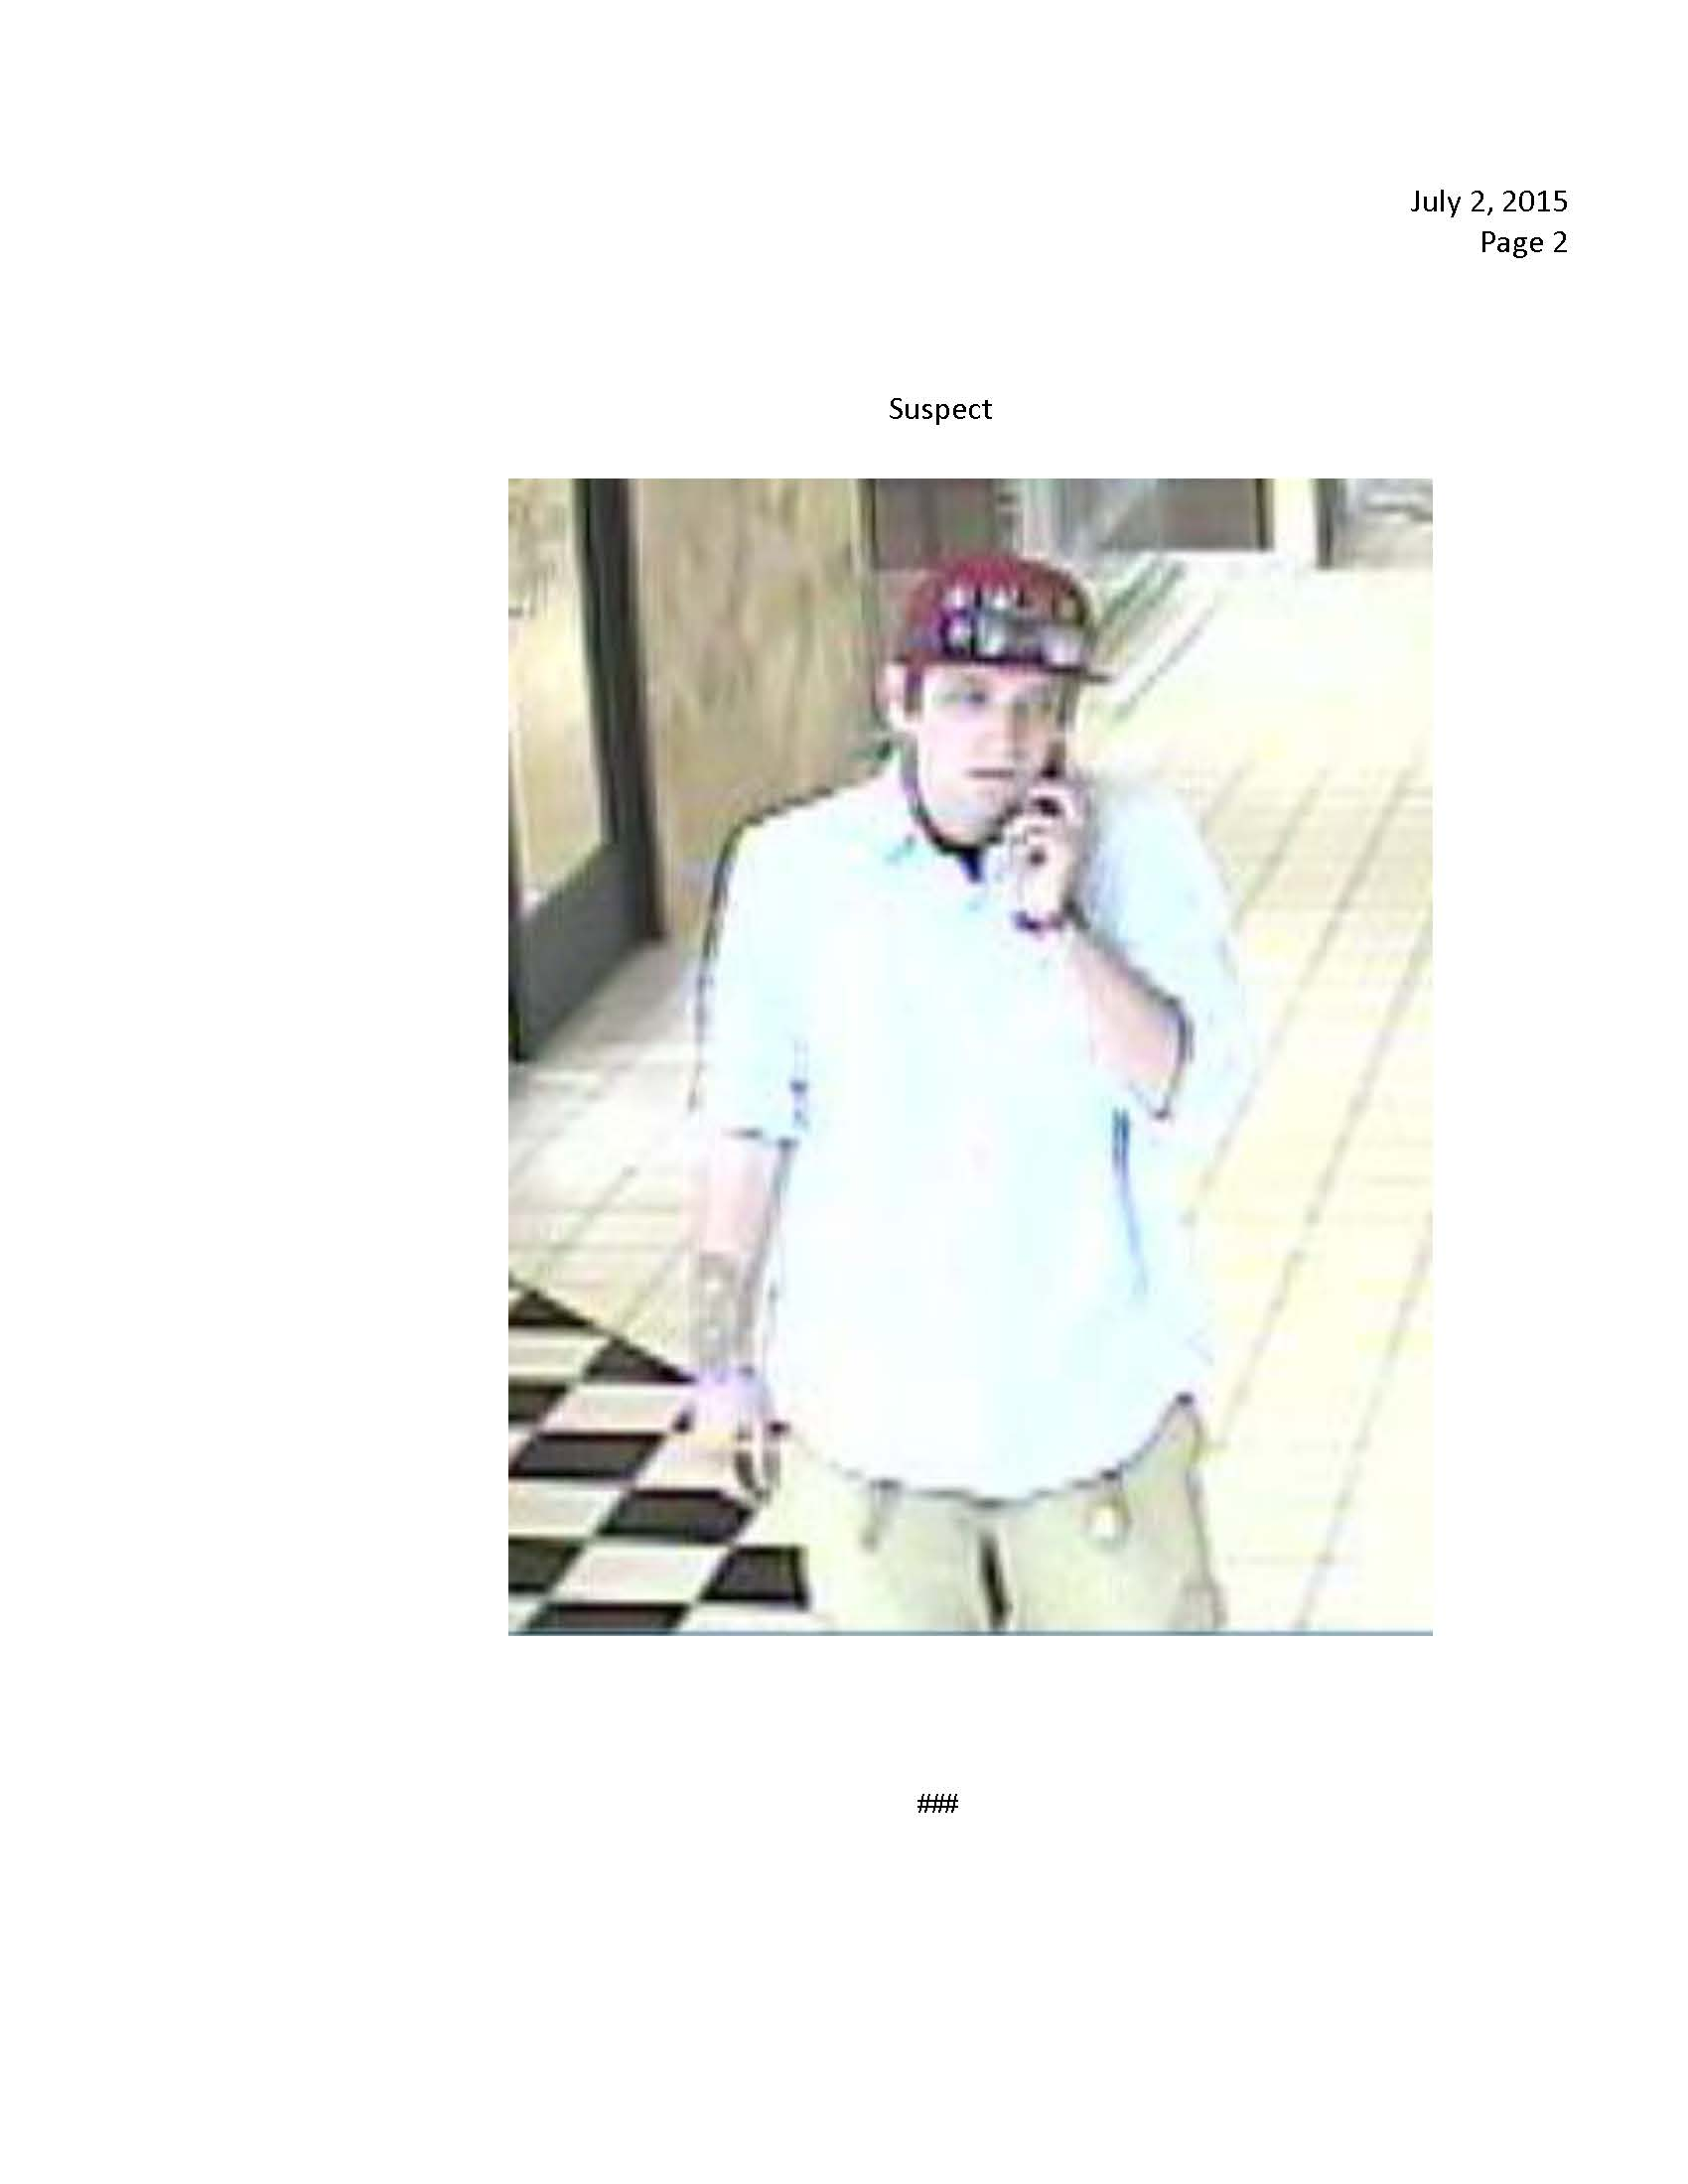 070215 Downtown Diamond Theft Case_Page_2